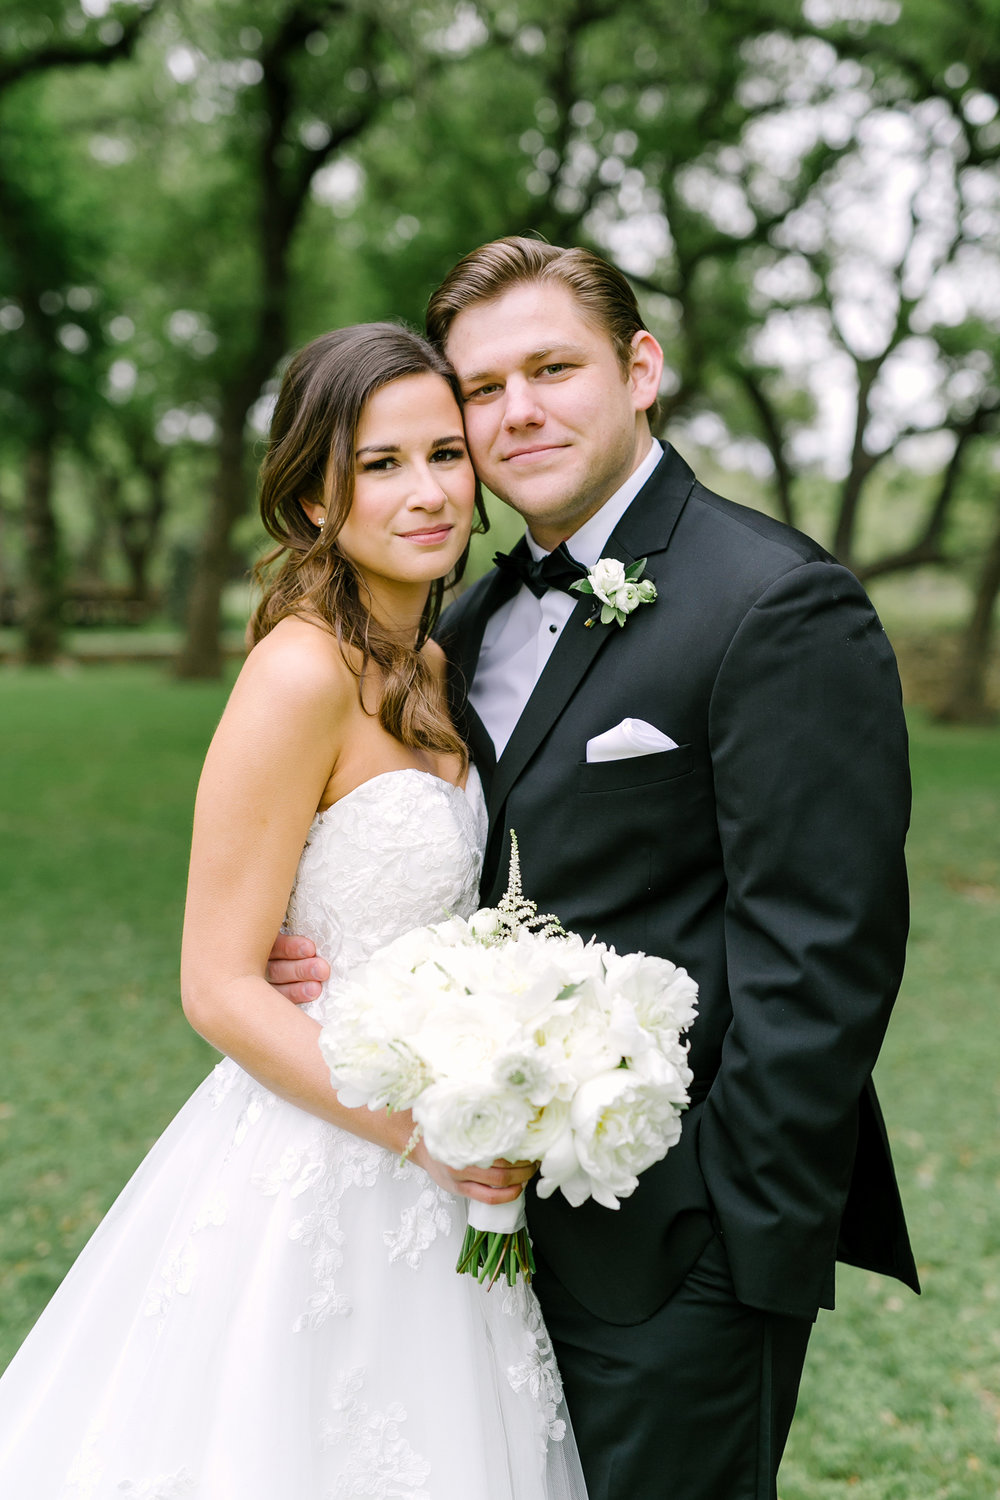 Austin_Wedding_Photographer_Kimberly_Brooke_Photographic_066.jpg